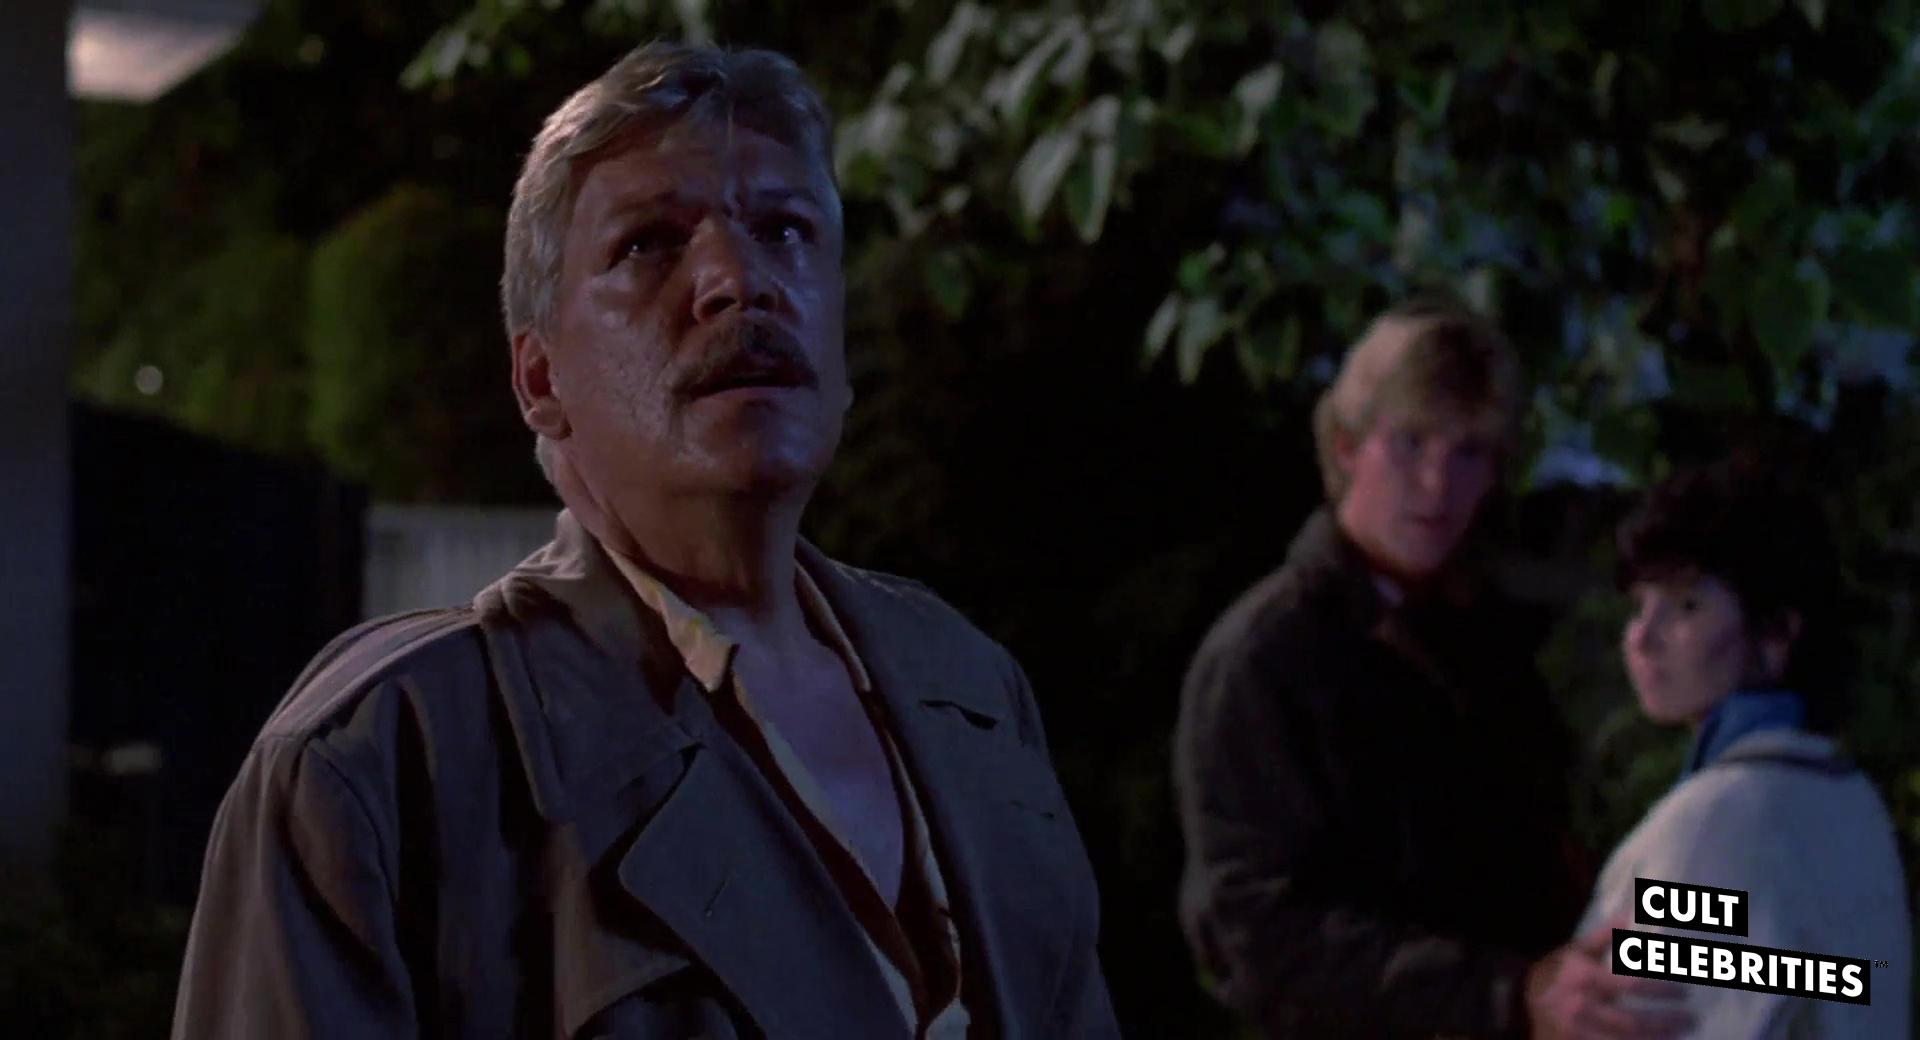 Tom Atkins in Night of the Creeps (1986)